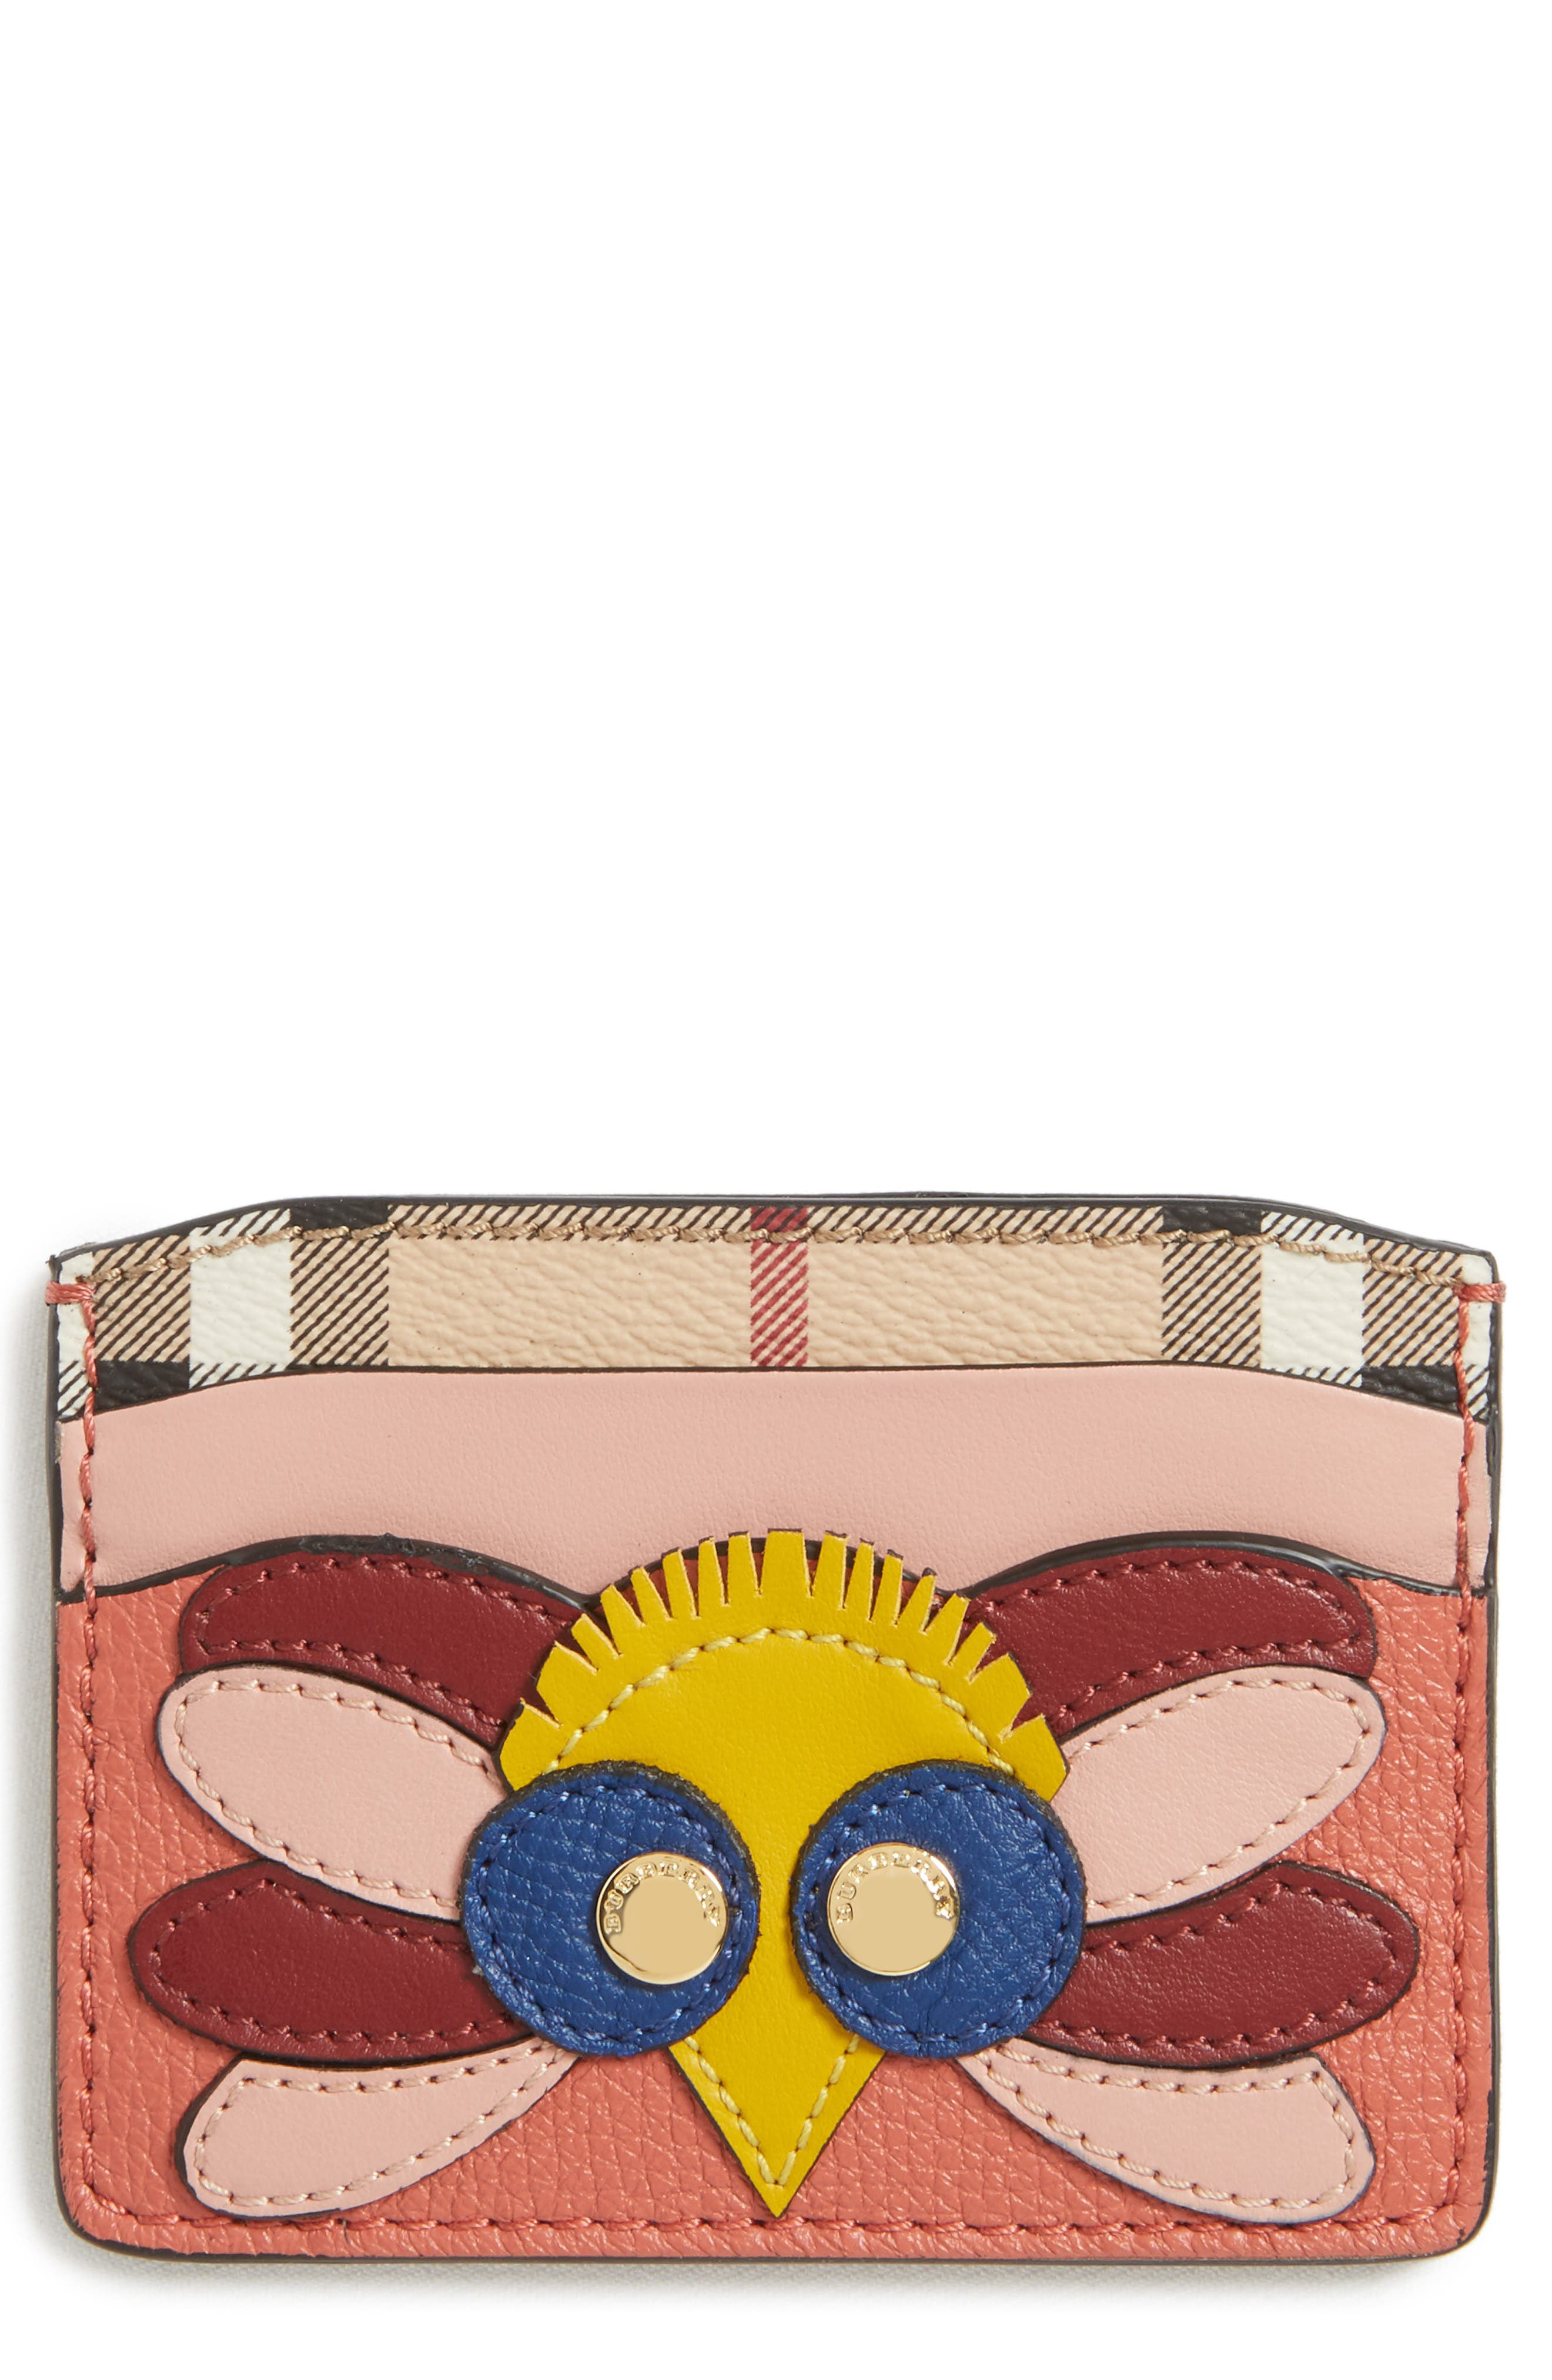 Izzy Beasts Owl Leather Card Case,                         Main,                         color, 603